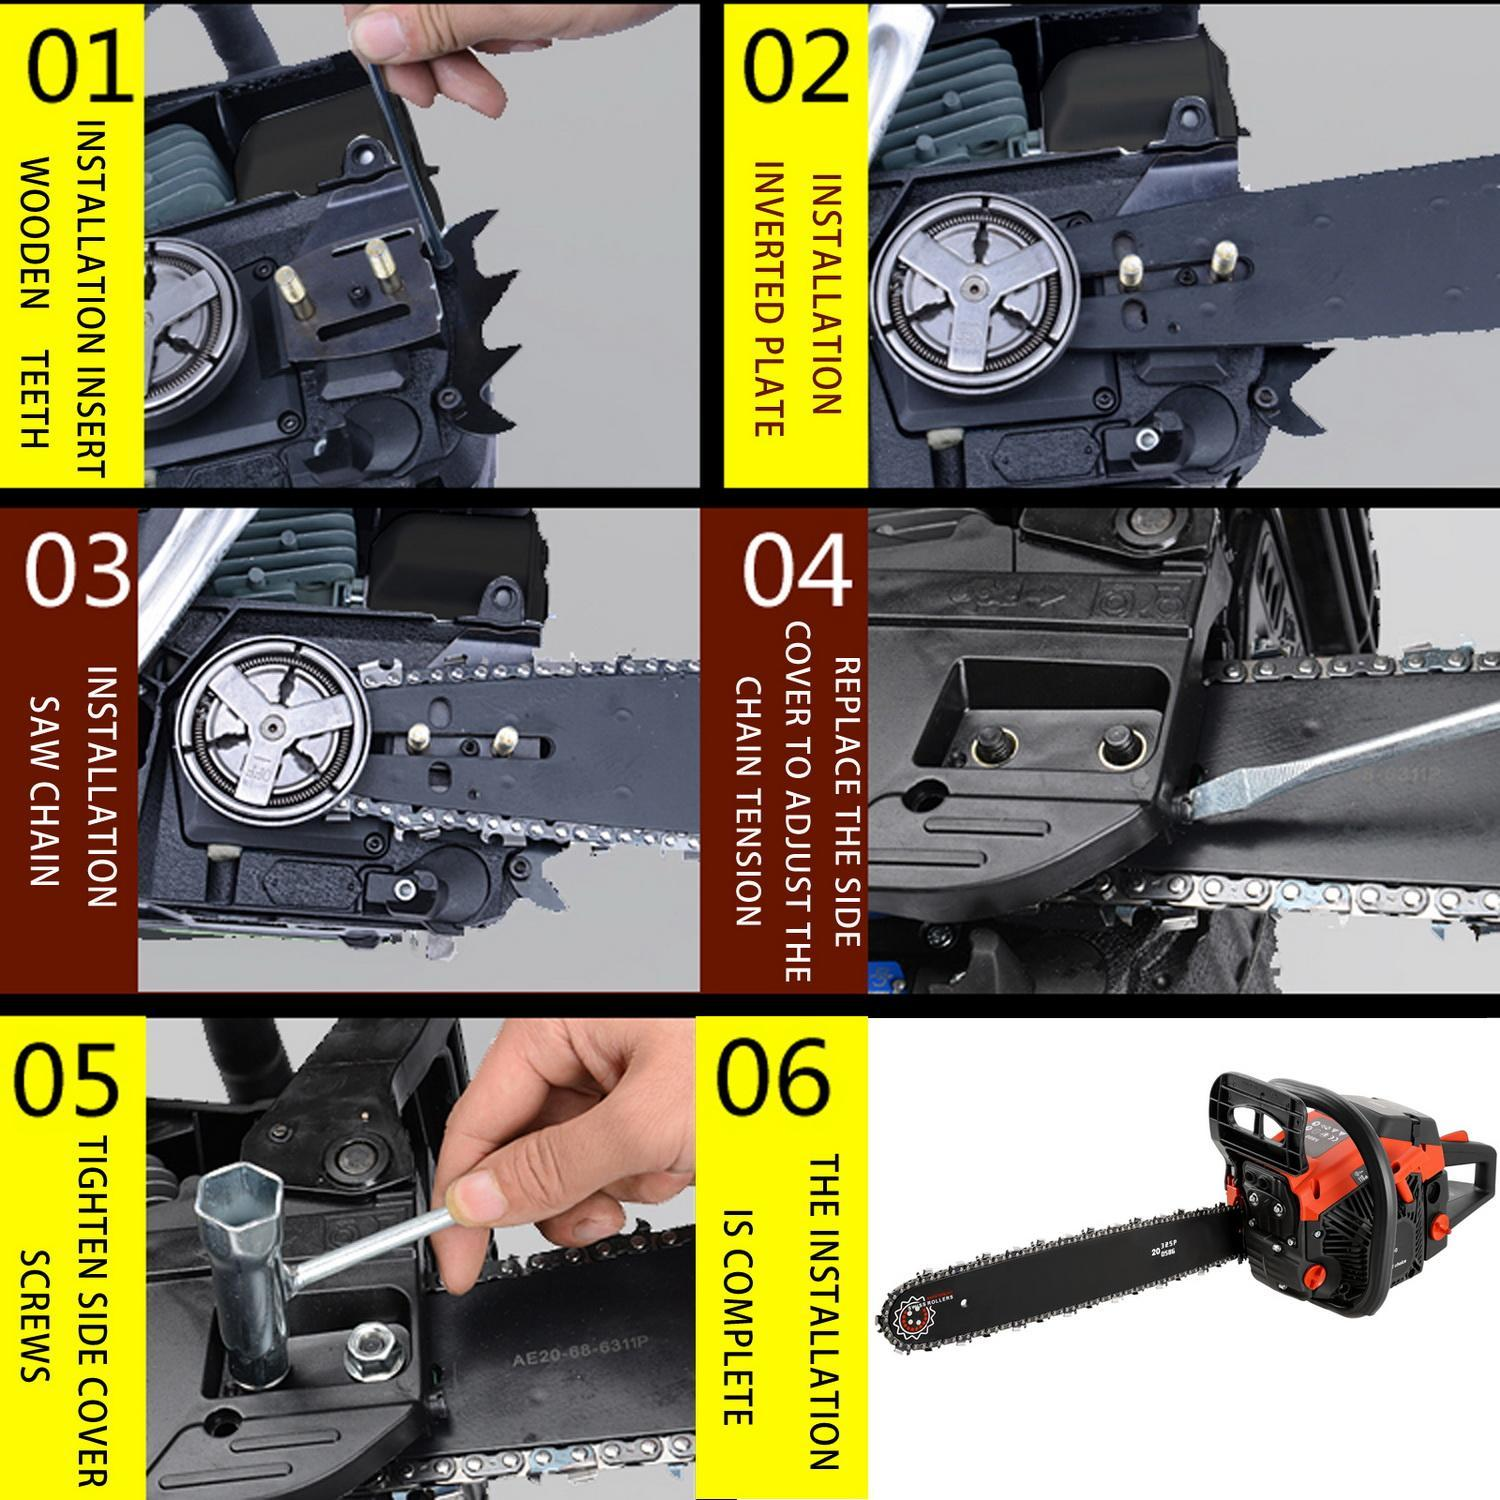 Petrol Chainsaw Saw Blade With Chains, Bar Cover and Tool Kit Garden Home Use 4